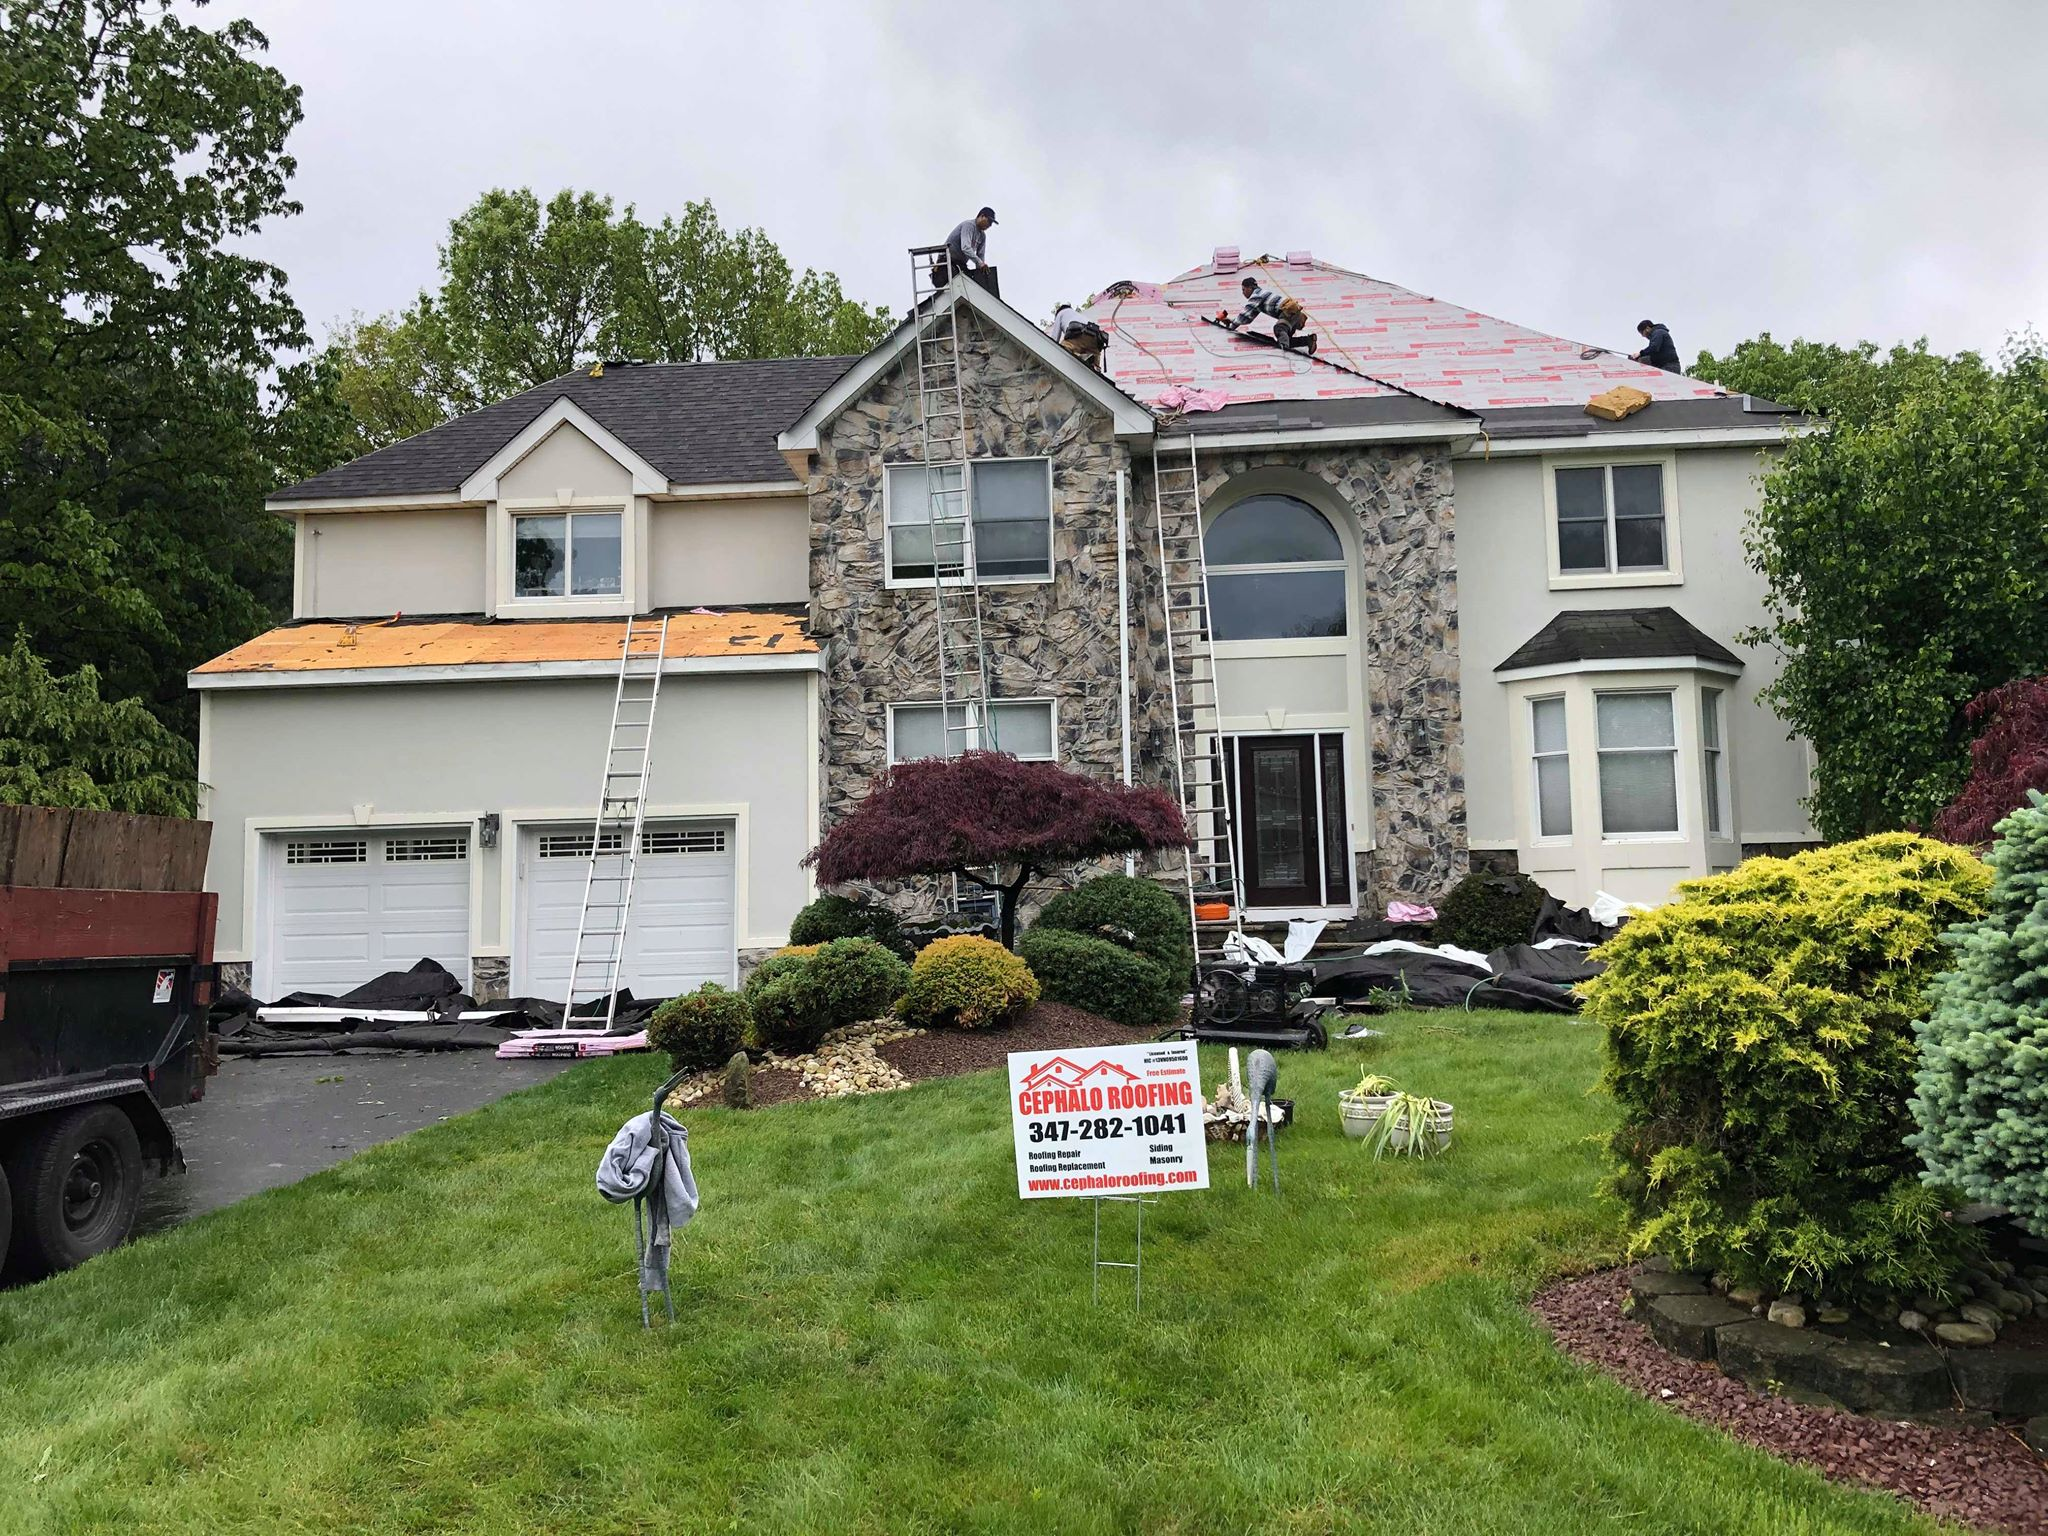 Roofing Contractor in New Jersey